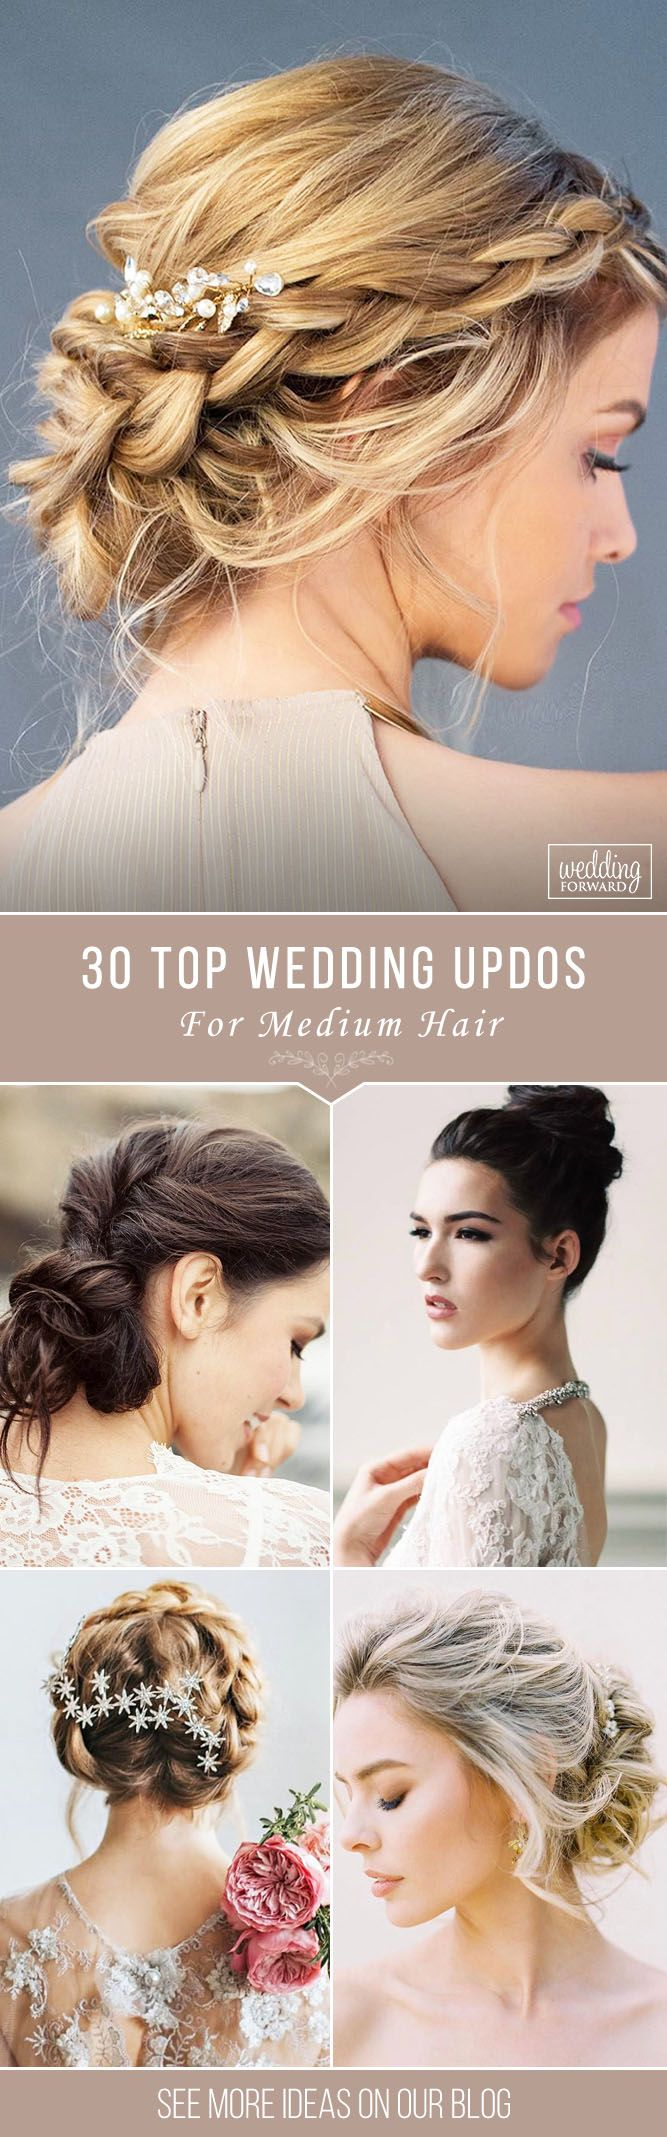 4018 wedding hairstyles &